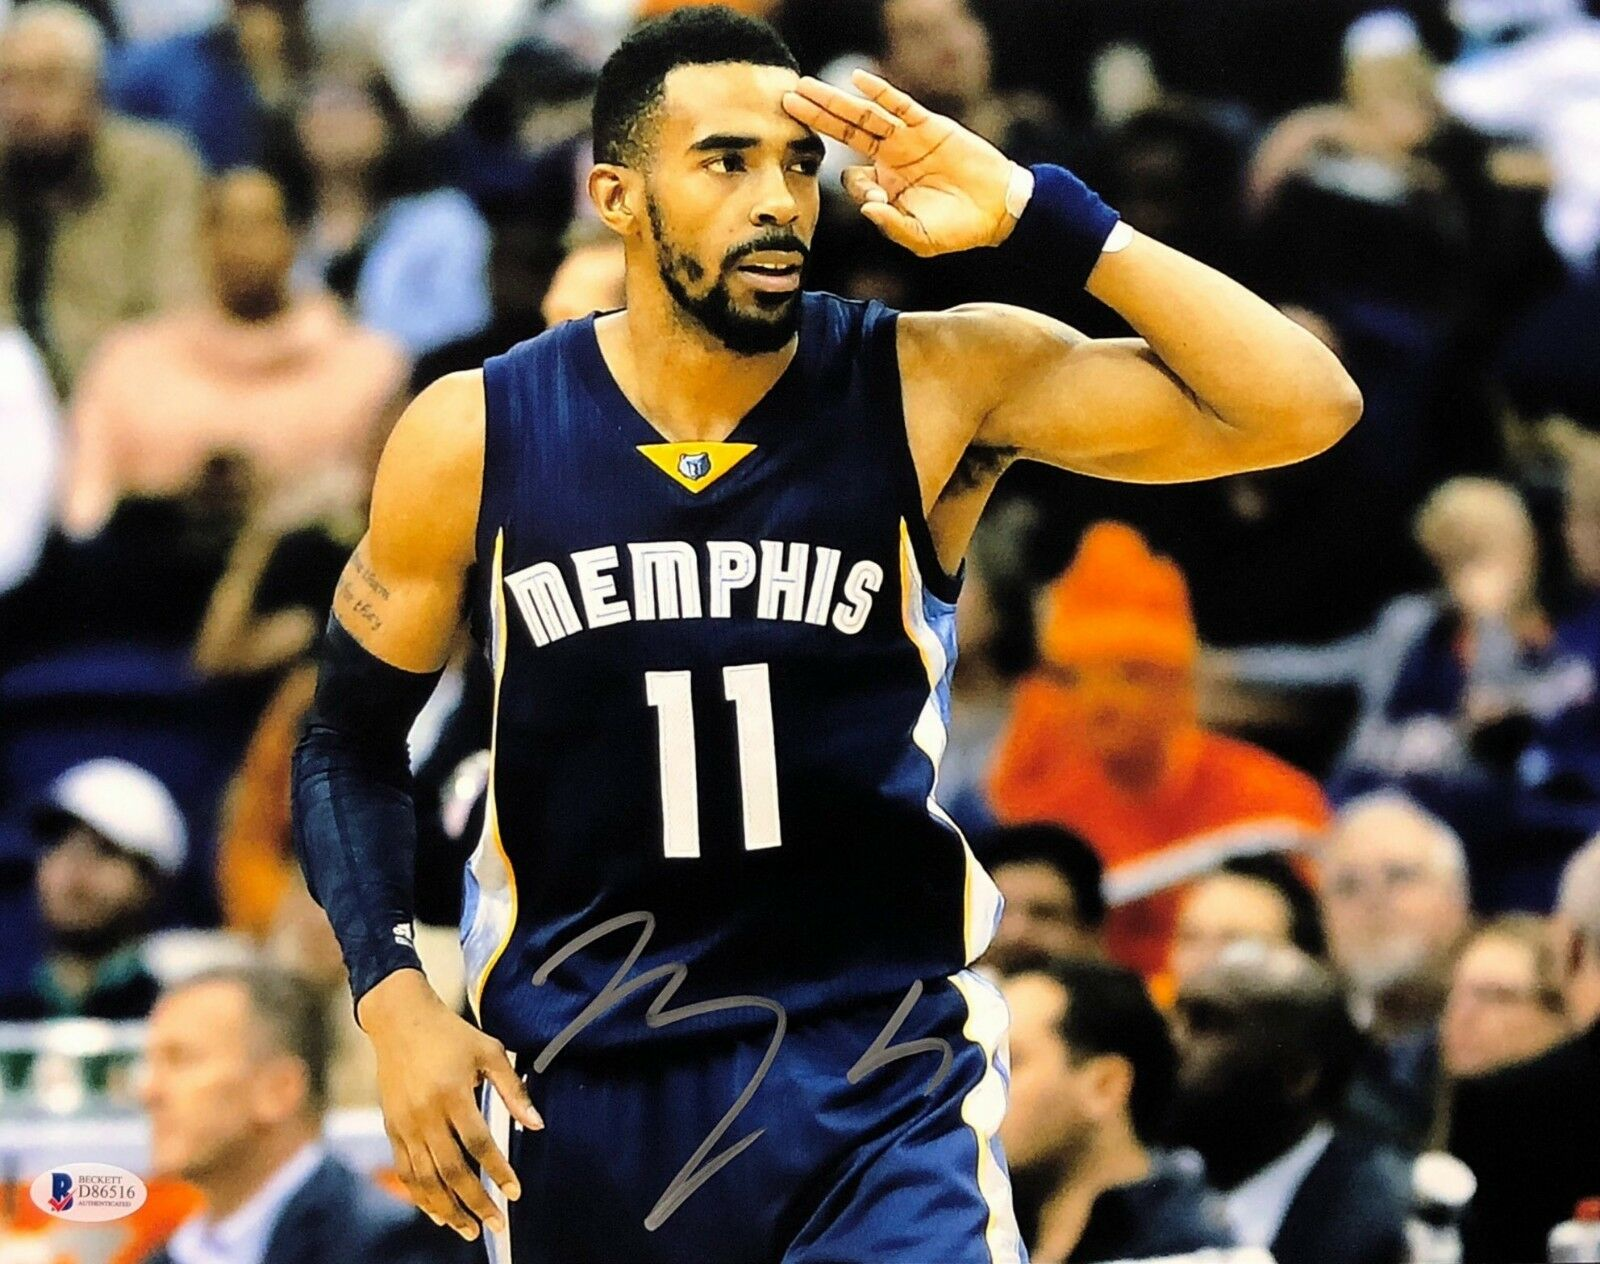 Mike Conley Signed Memphis Grizzlies 11x14 Basketball Photo Beckett BAS D86516